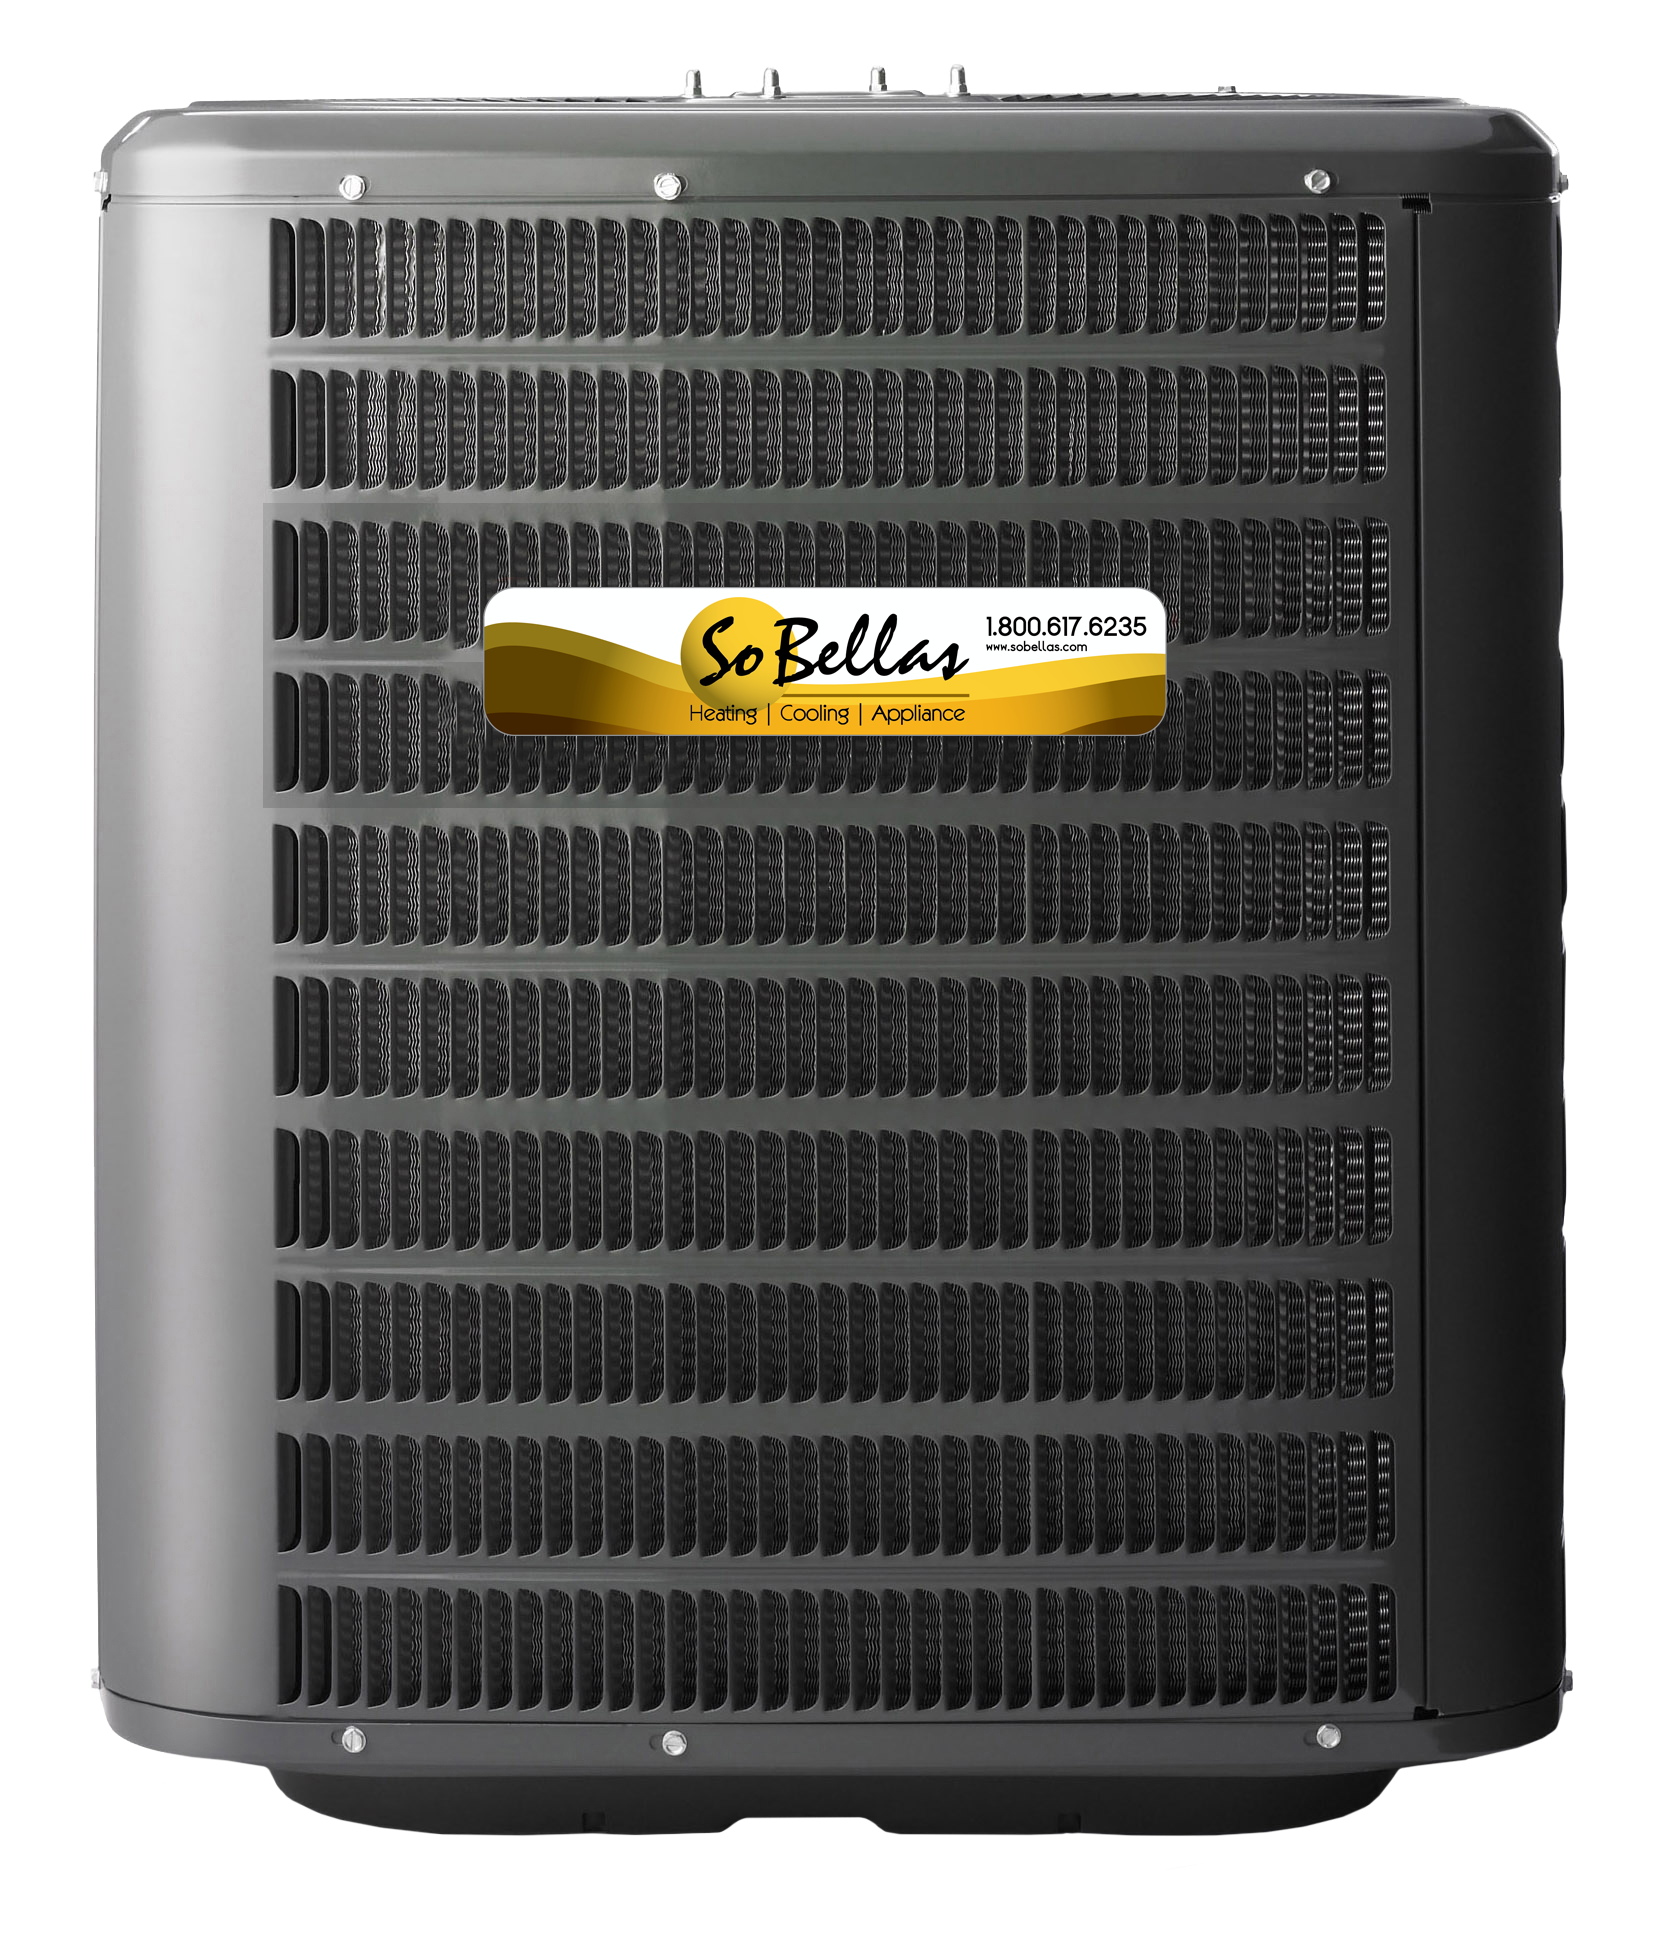 #BE930D SoBellas Signature Series Air Conditioning Repair  Most Effective 8245 Air Conditioner Repair El Paso Texas pictures with 1670x1951 px on helpvideos.info - Air Conditioners, Air Coolers and more